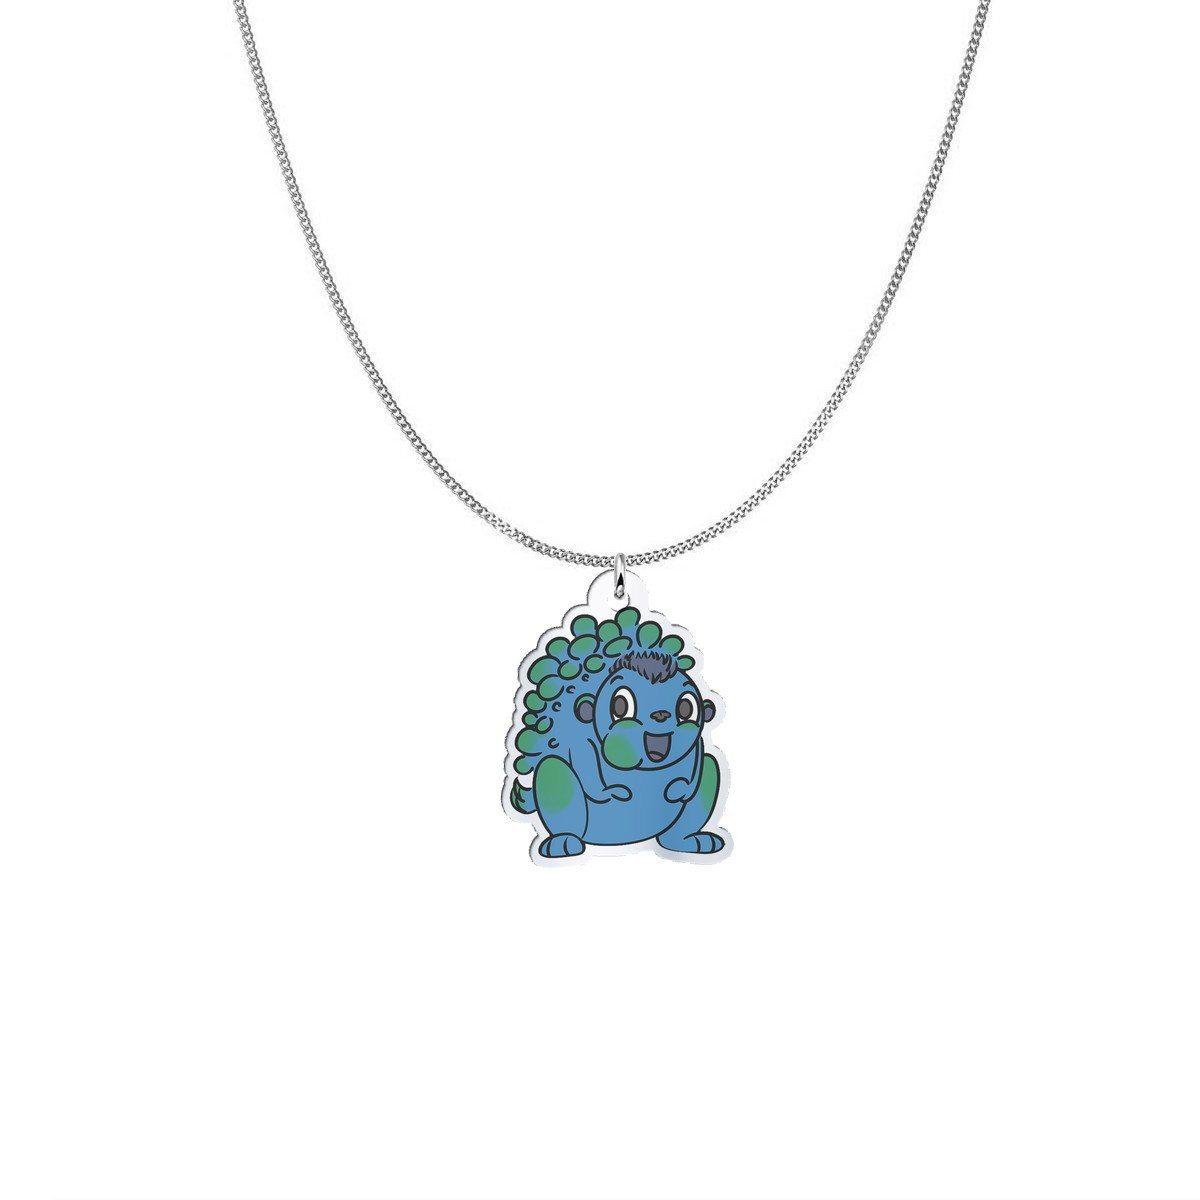 Pendant - Ned The Neurofibromatosis Monster Silver Necklace